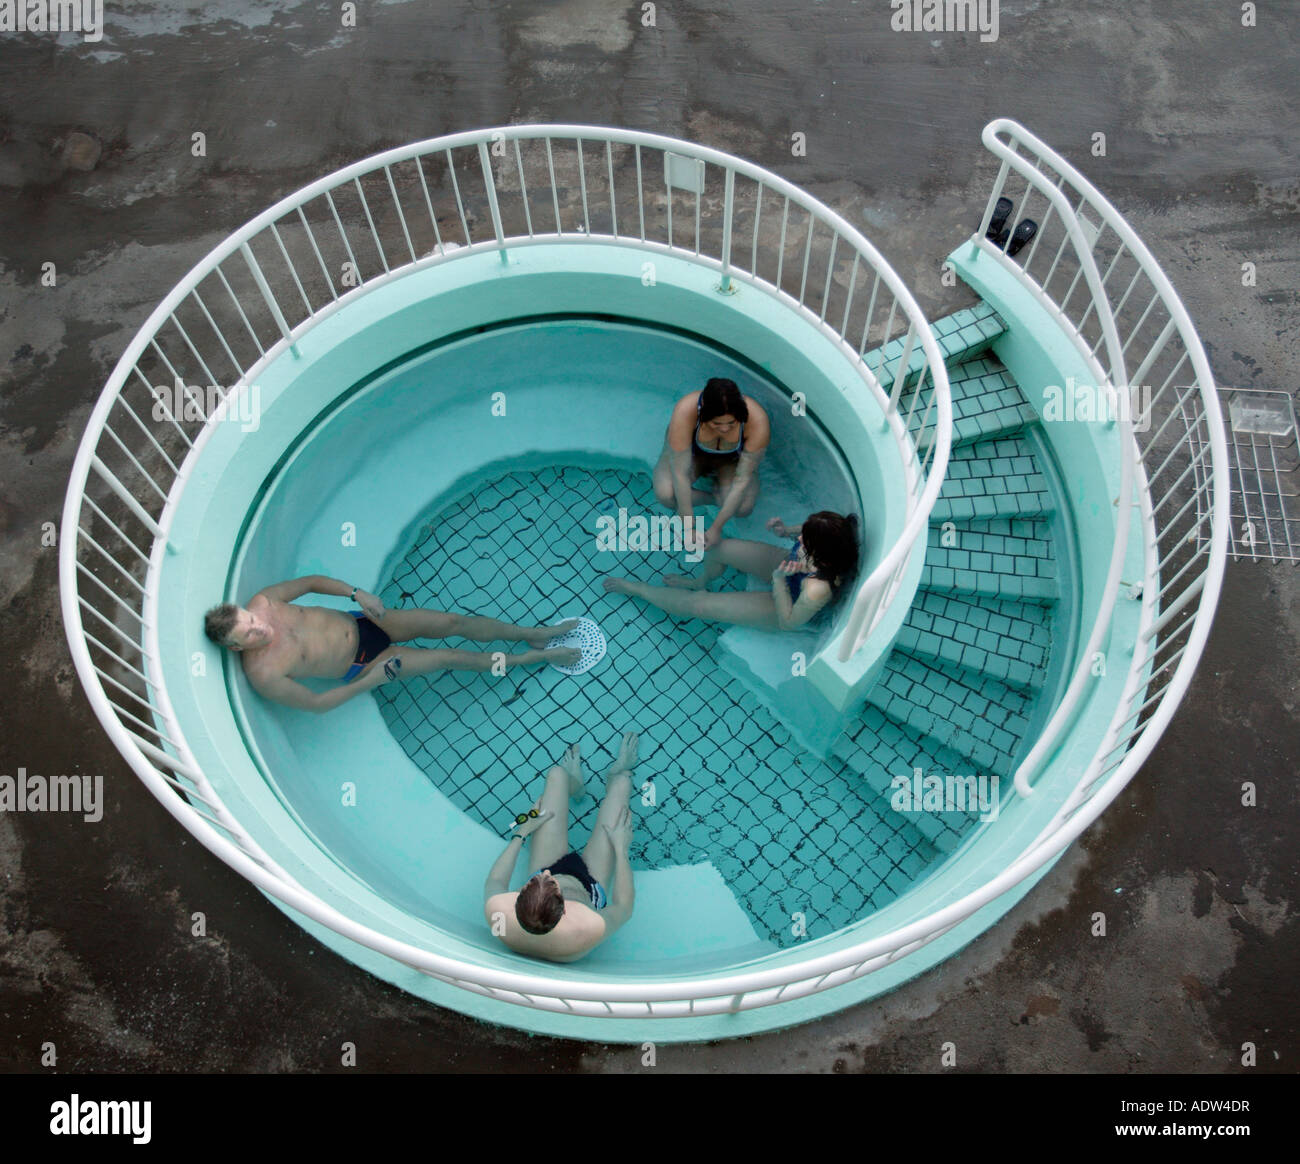 People in a hot tub, Laugardals swimming pool, Reykjavik ...